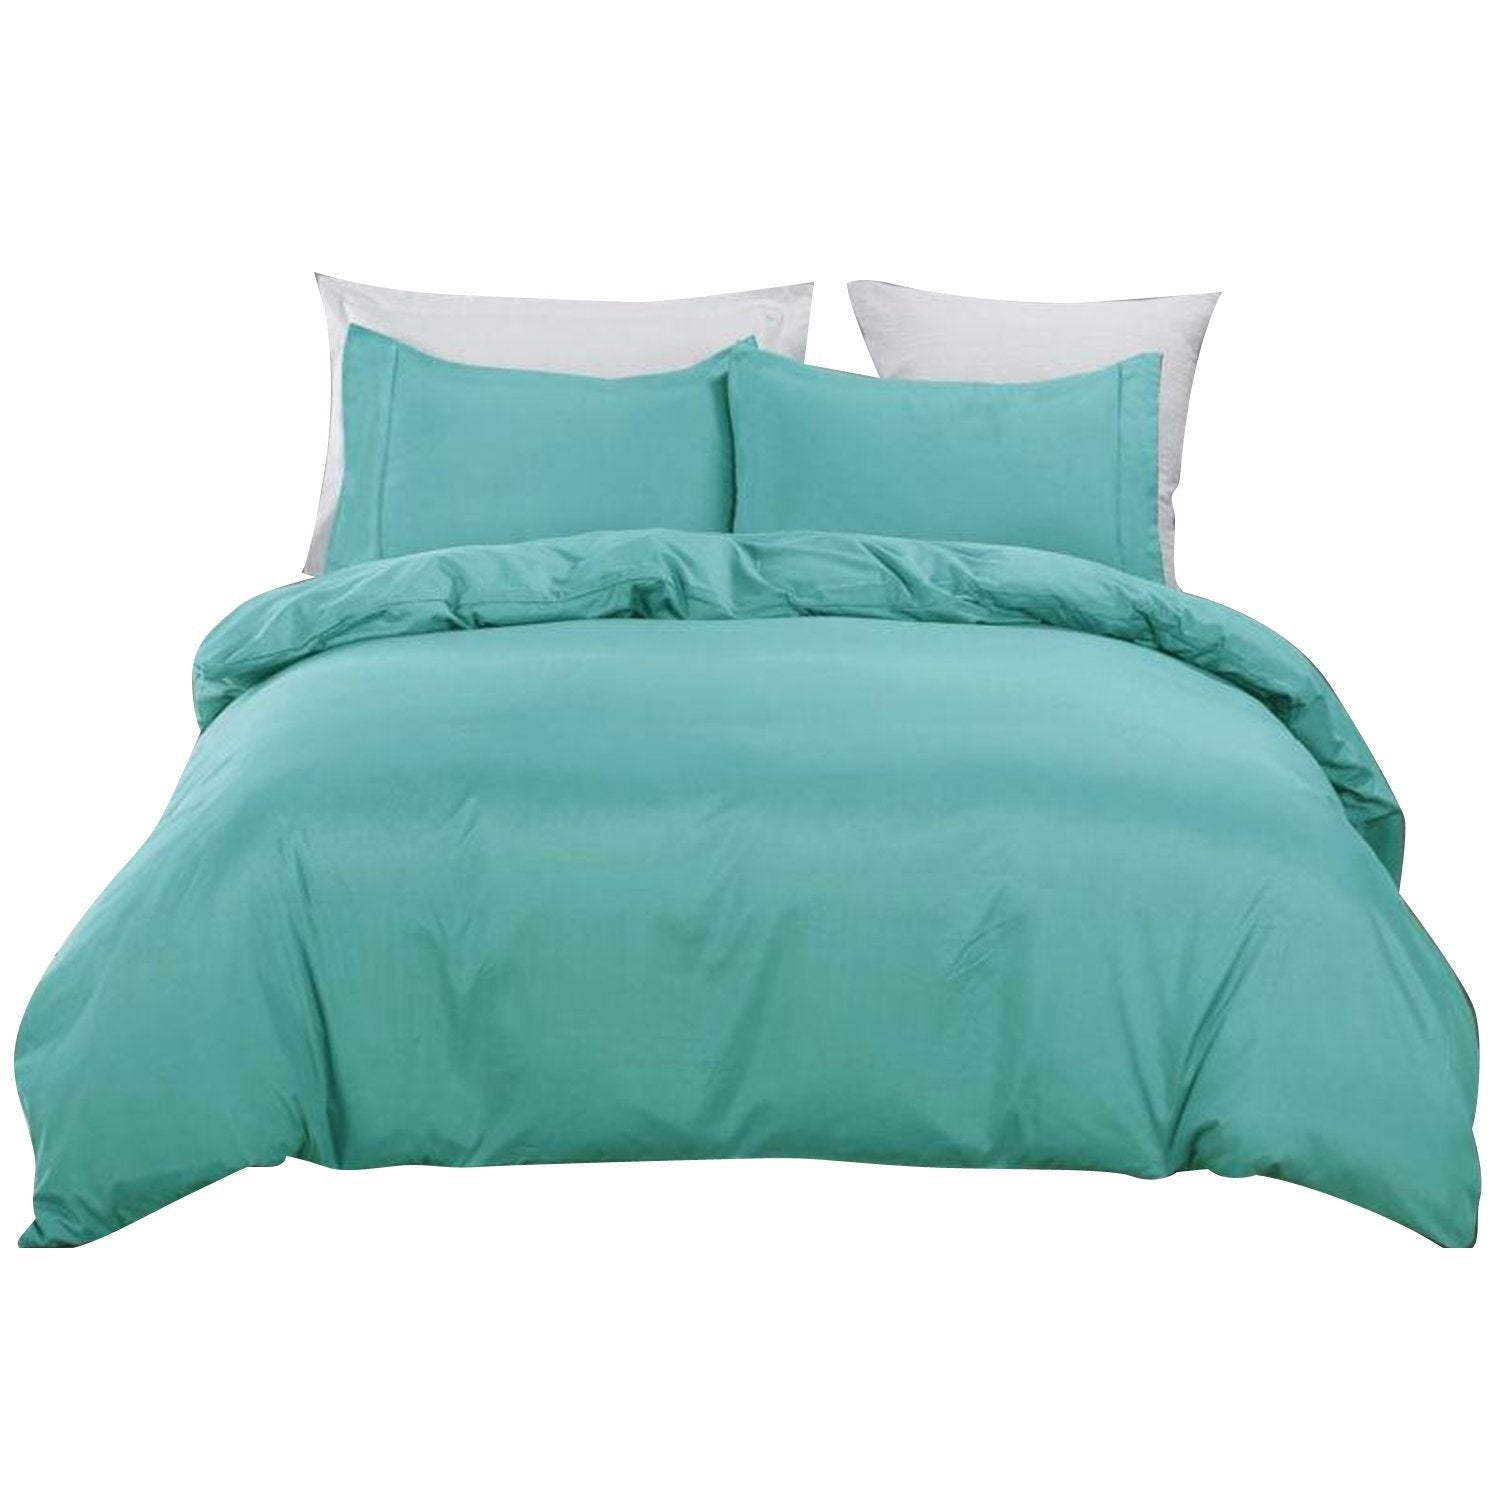 Icy Blue Soft Quilt Doona Cover Set 5 Size